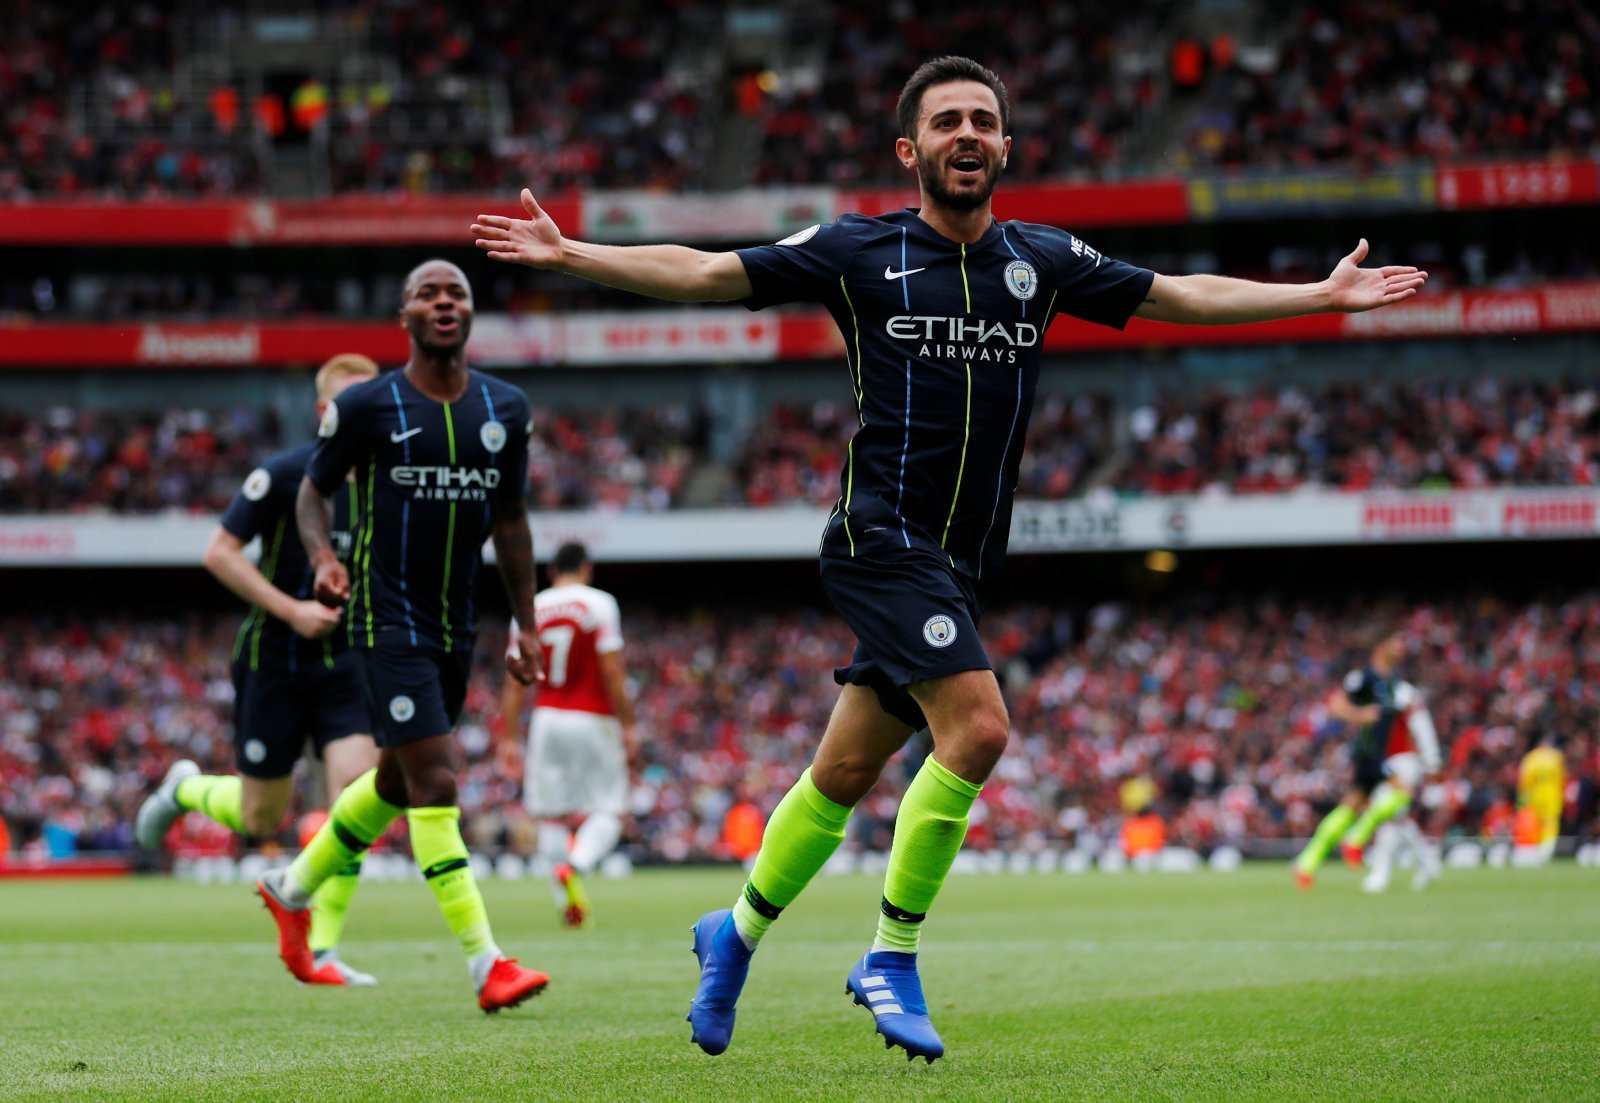 TT Introduces: Manchester City's saviour, Bernardo Silva